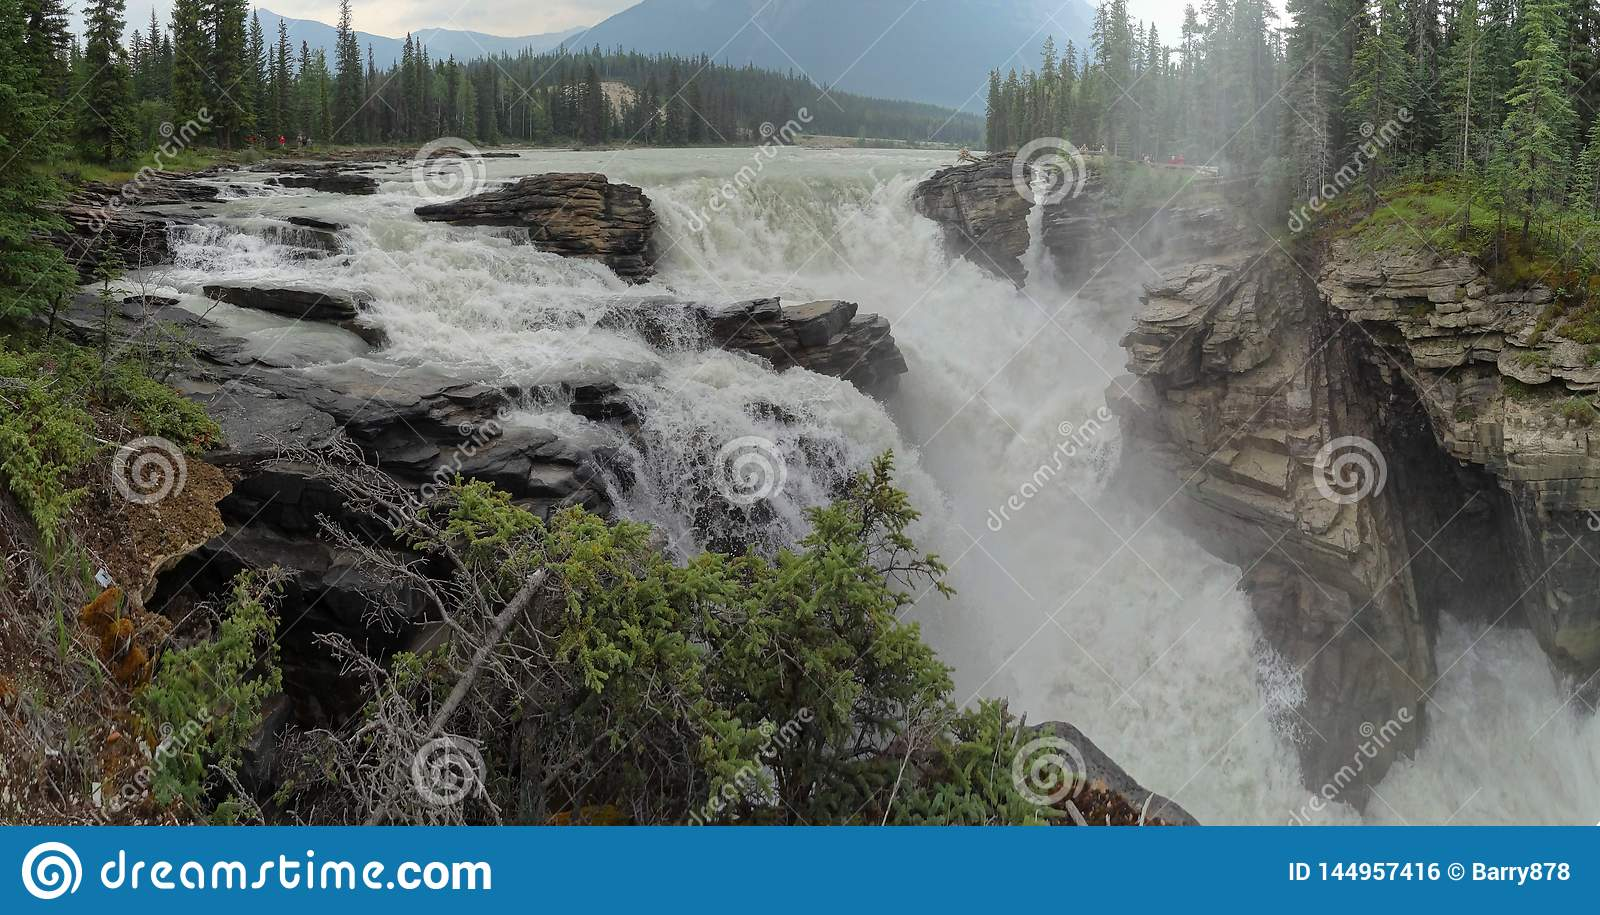 The churning waters of Athabasca Falls